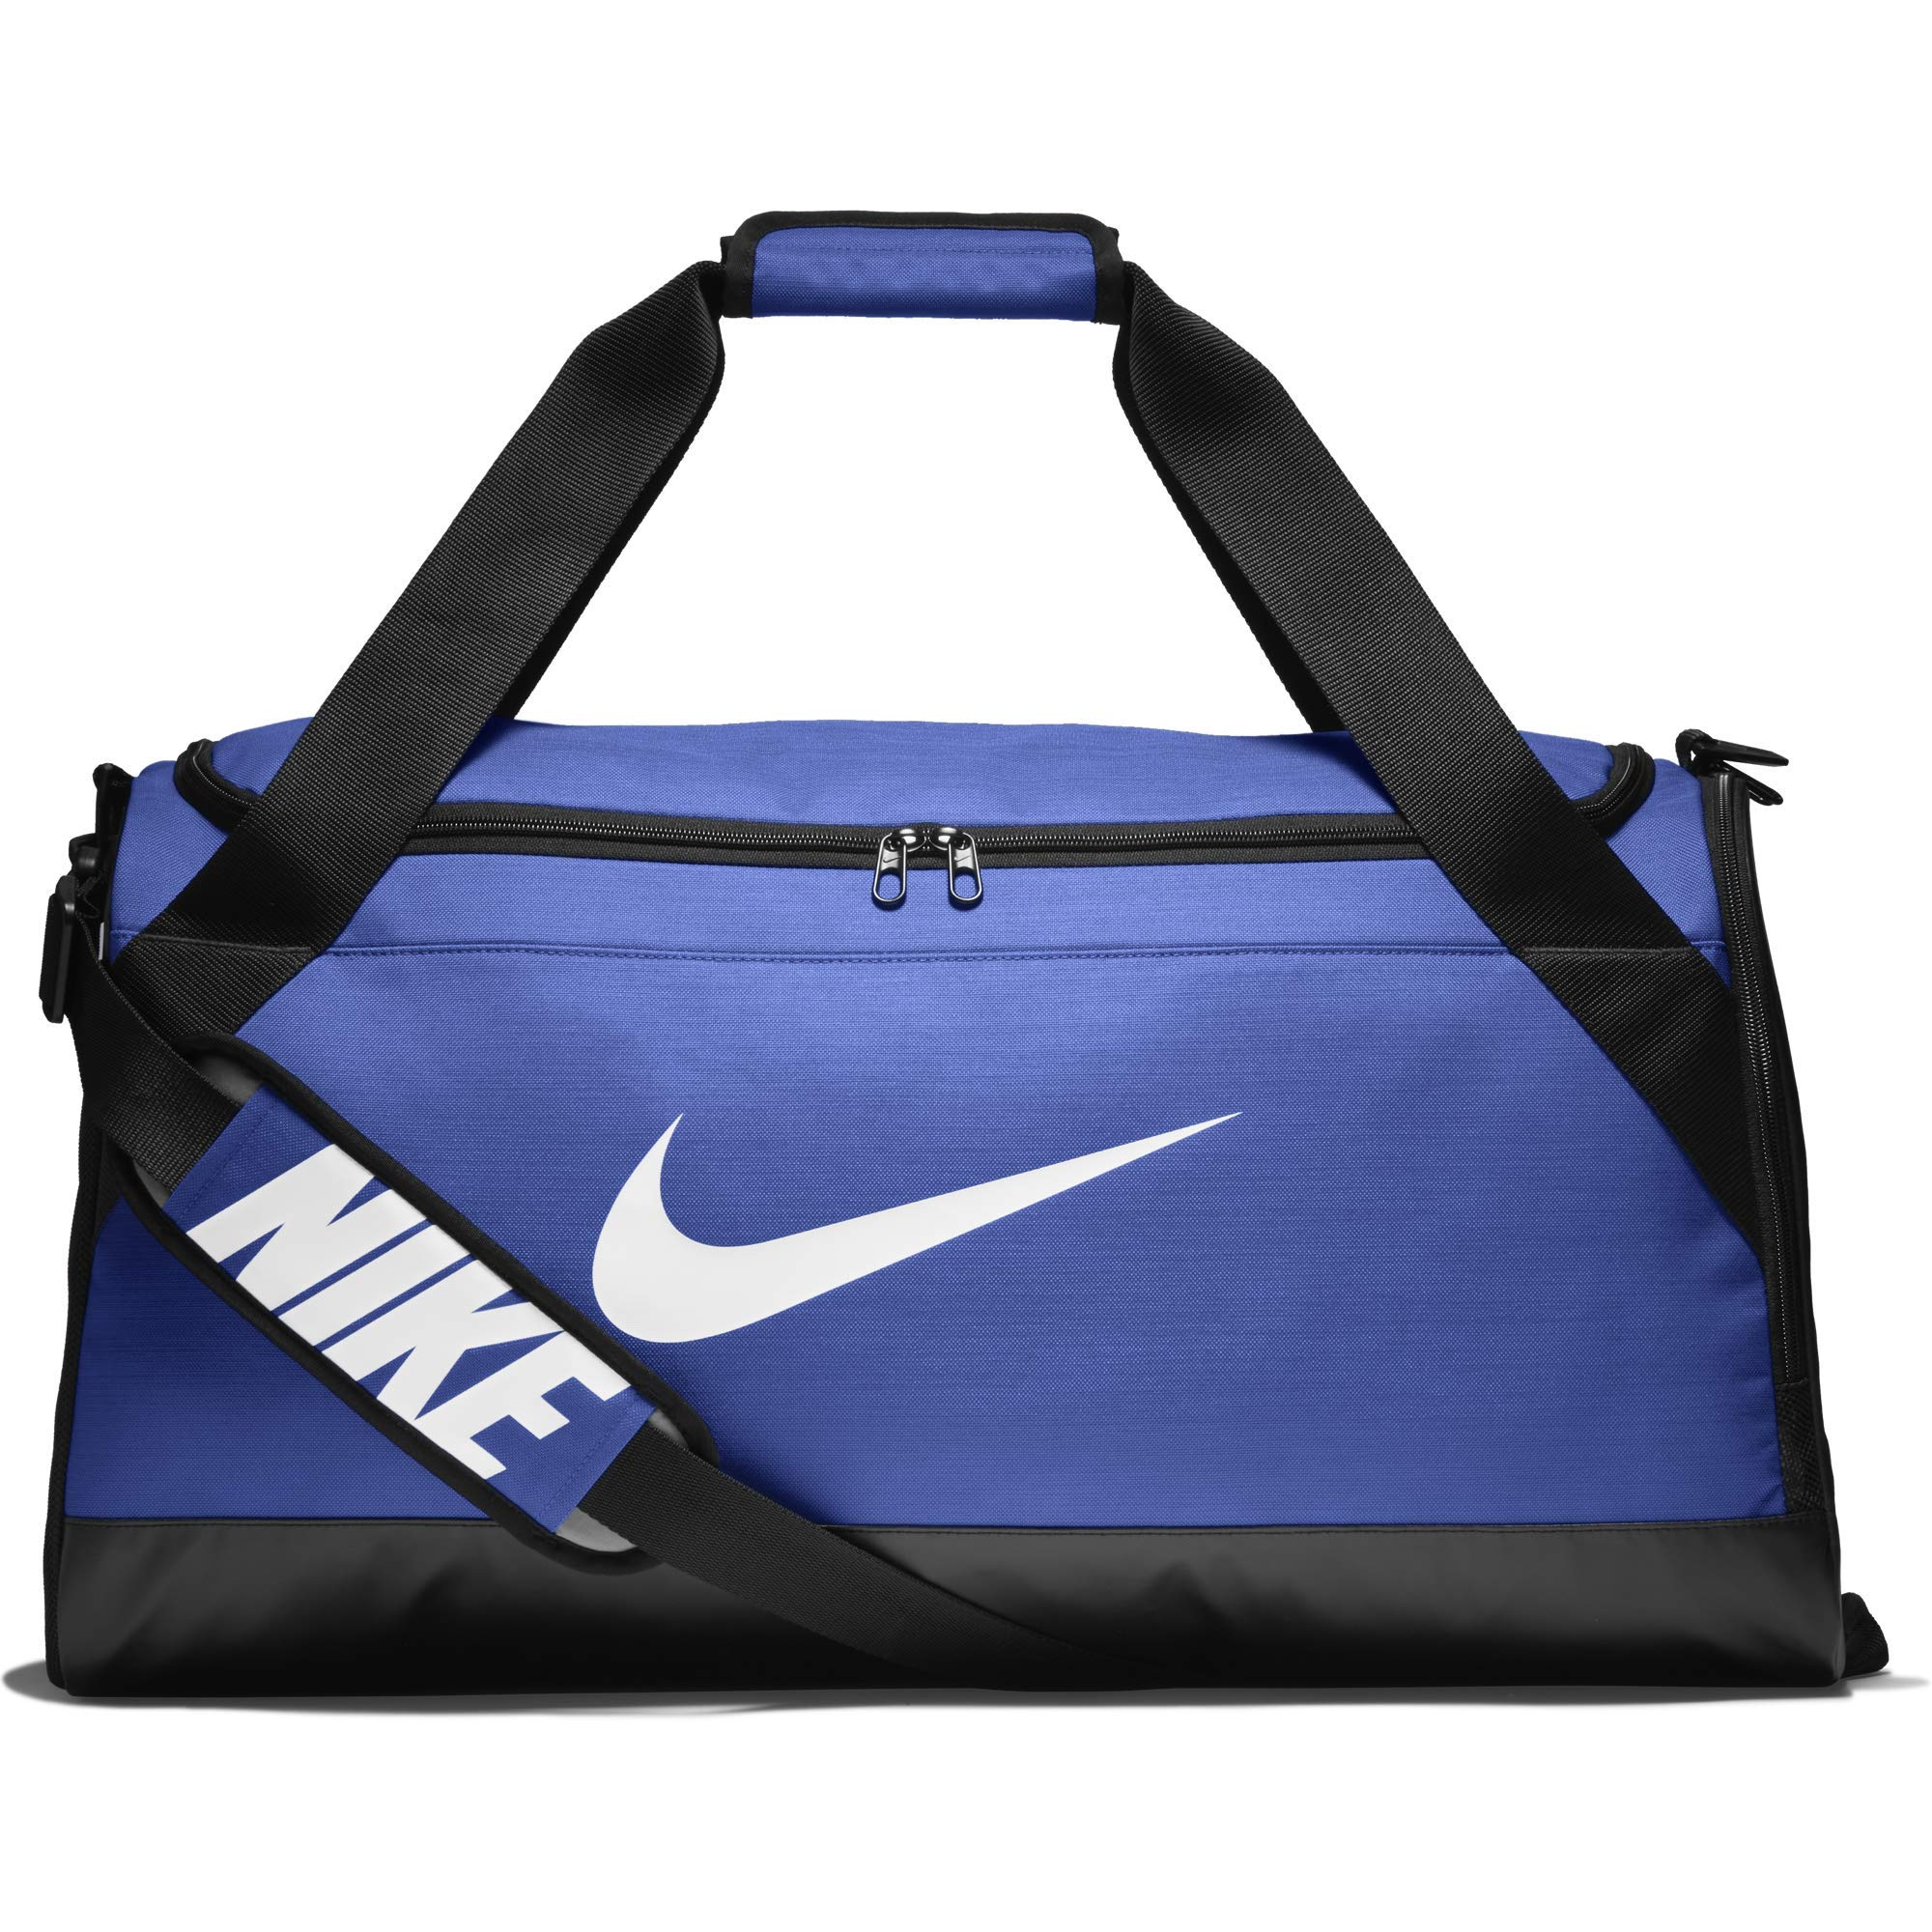 50622ea7460a Grab everything you need for a quick trip to the gym with the NIKE Brasilia  Training Duffel Bag.